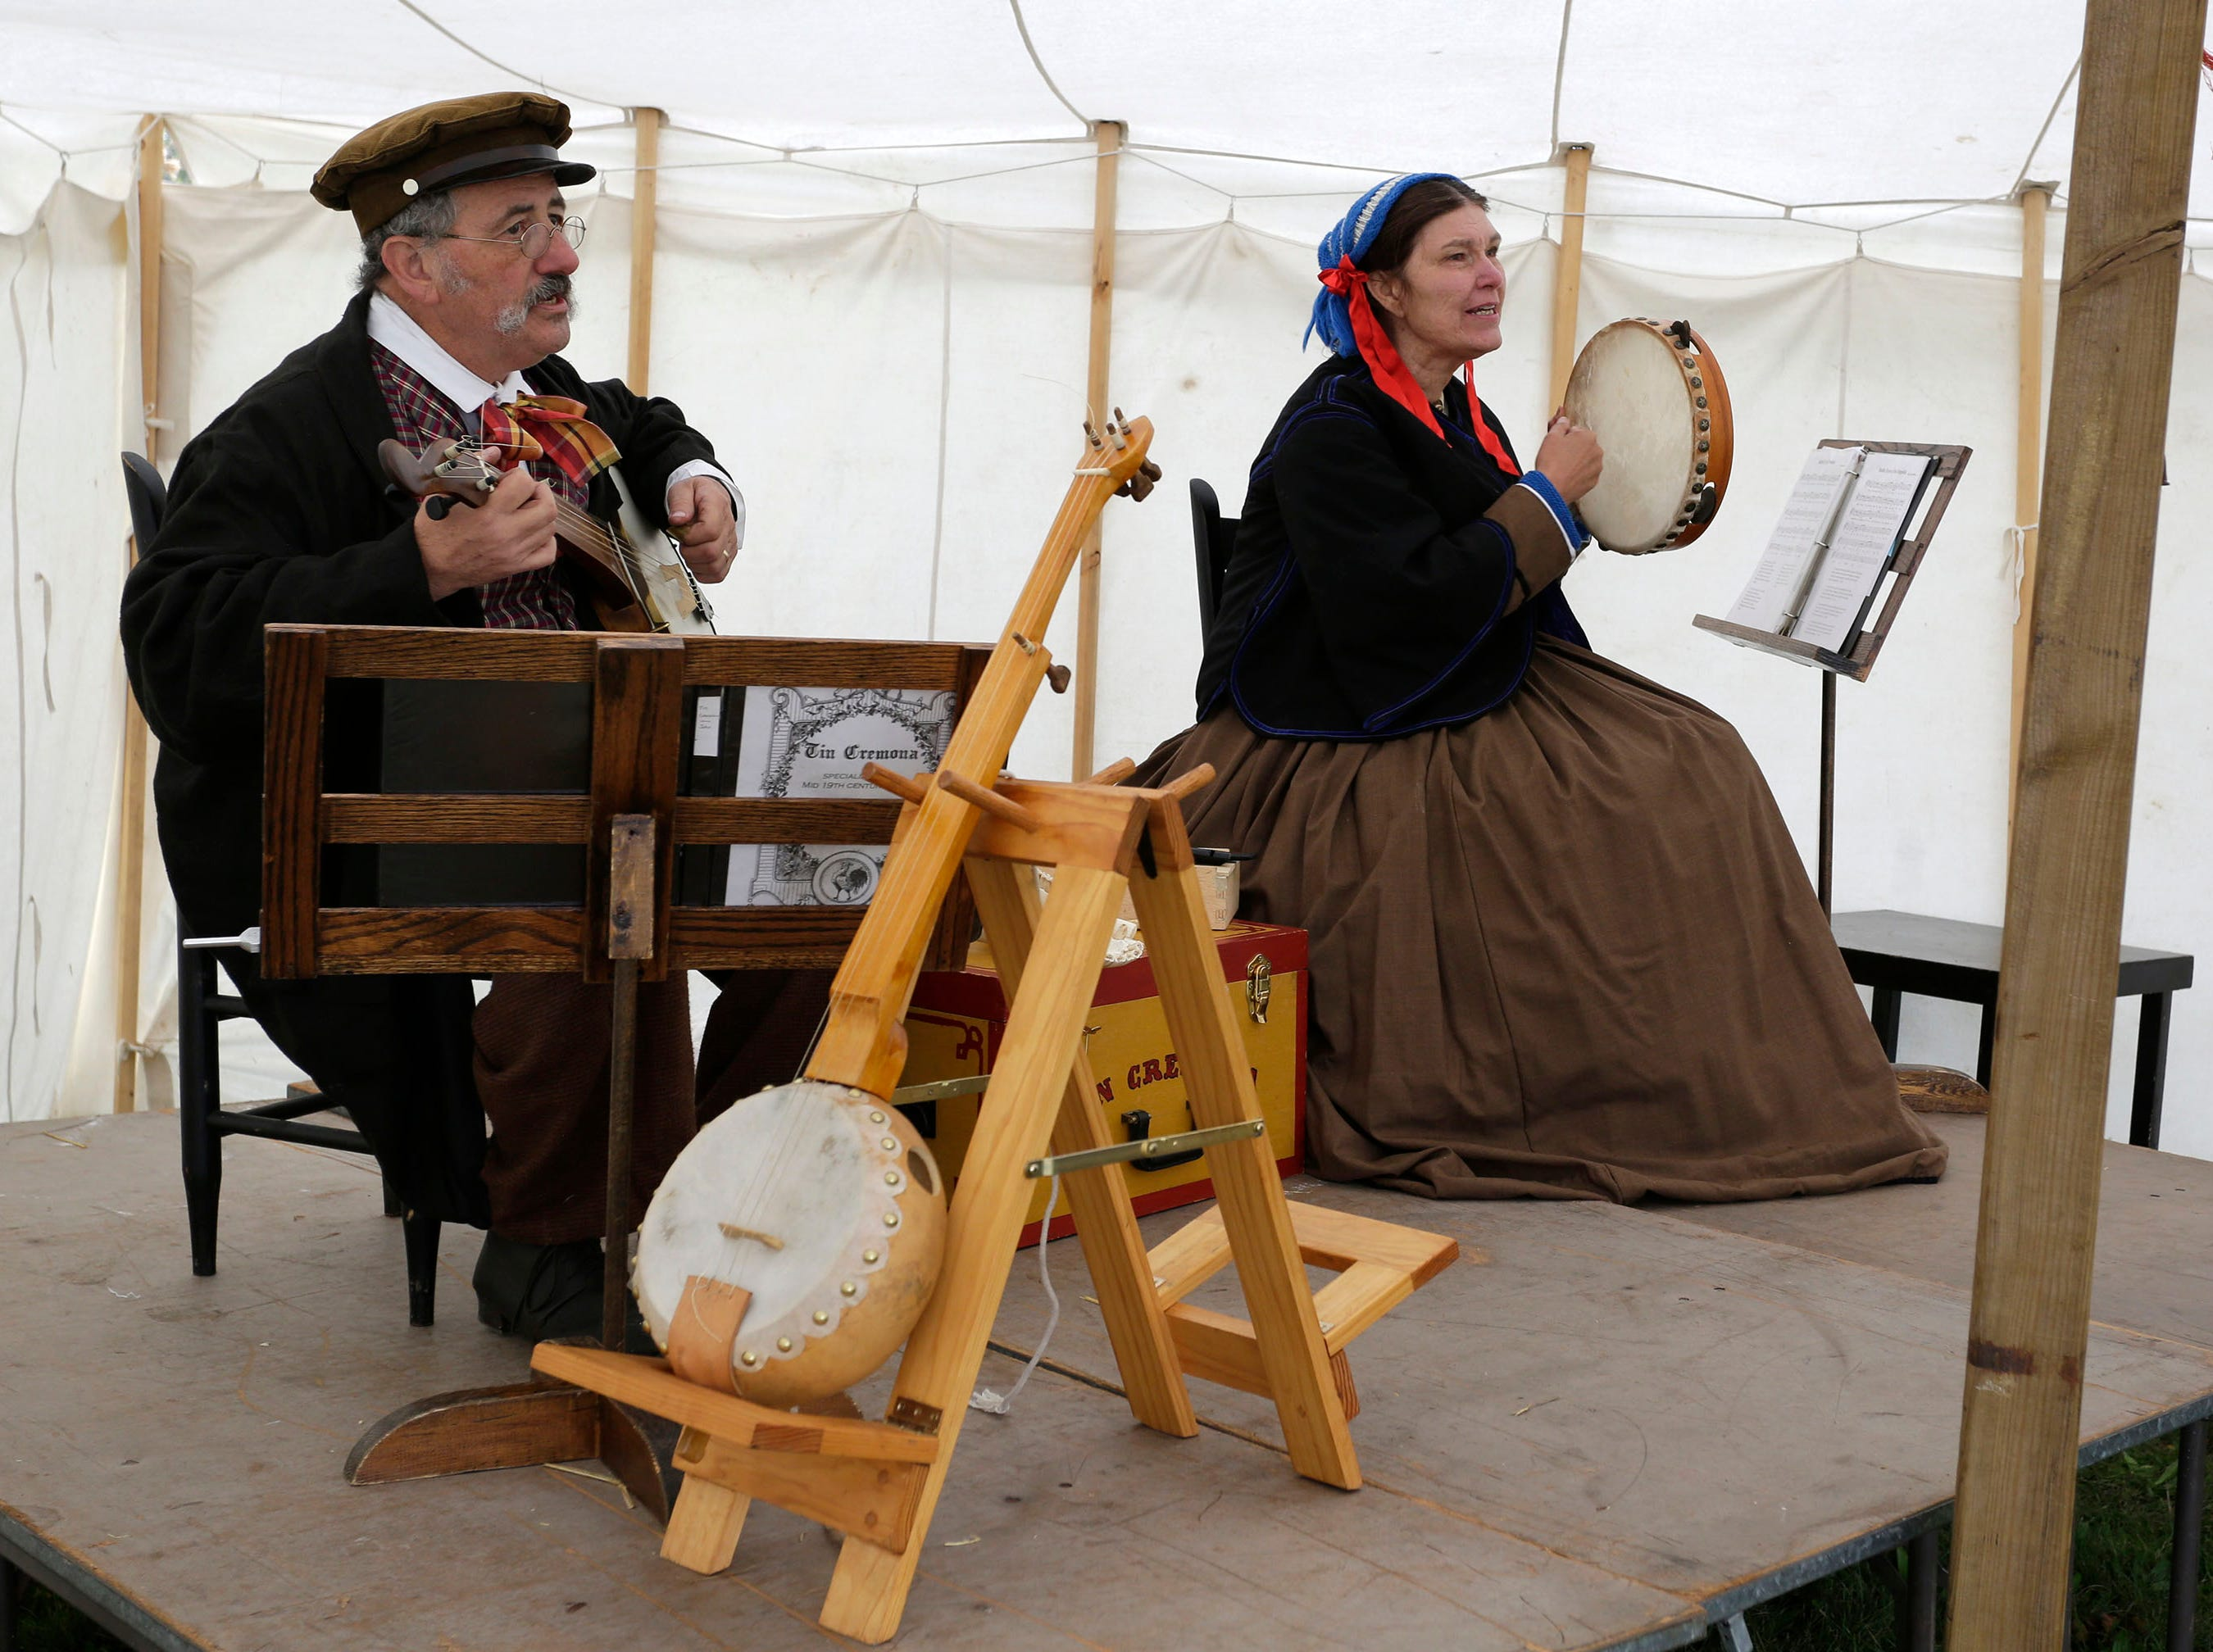 People could experience the music of the Civil War era during the Civil War Weekend at the Wade House, Saturday September 29, 2018, in Greenbush, Wis.